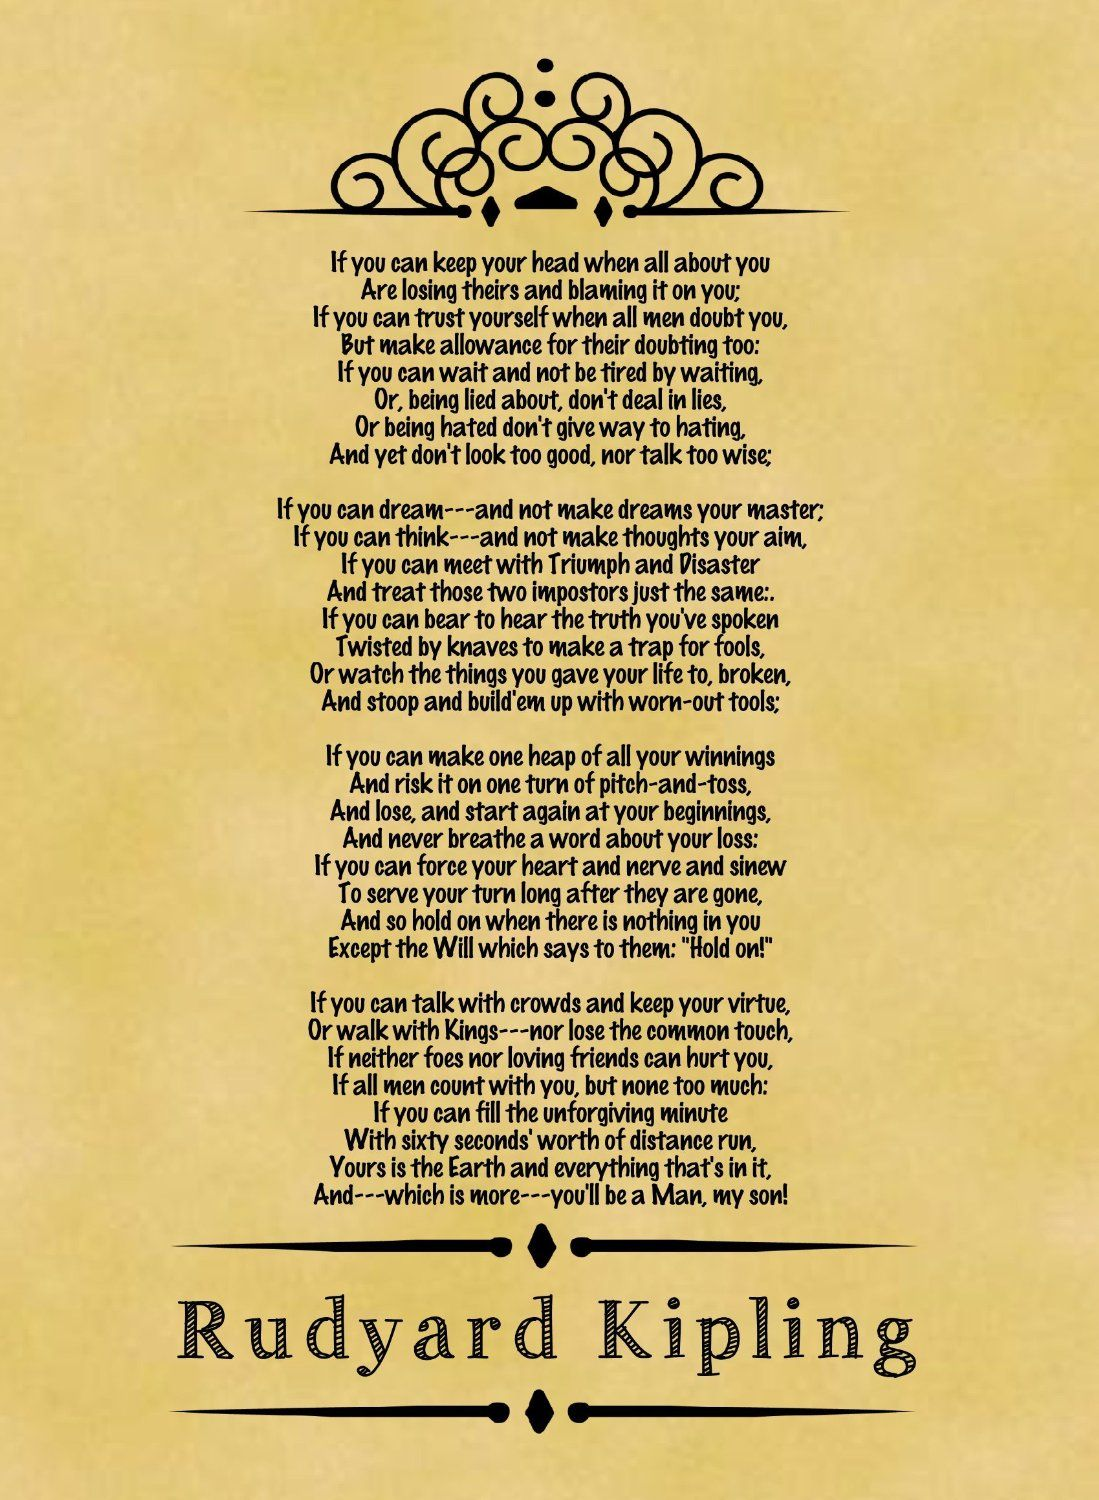 IF RUDYARD KIPLING POEM PDF DOWNLOAD